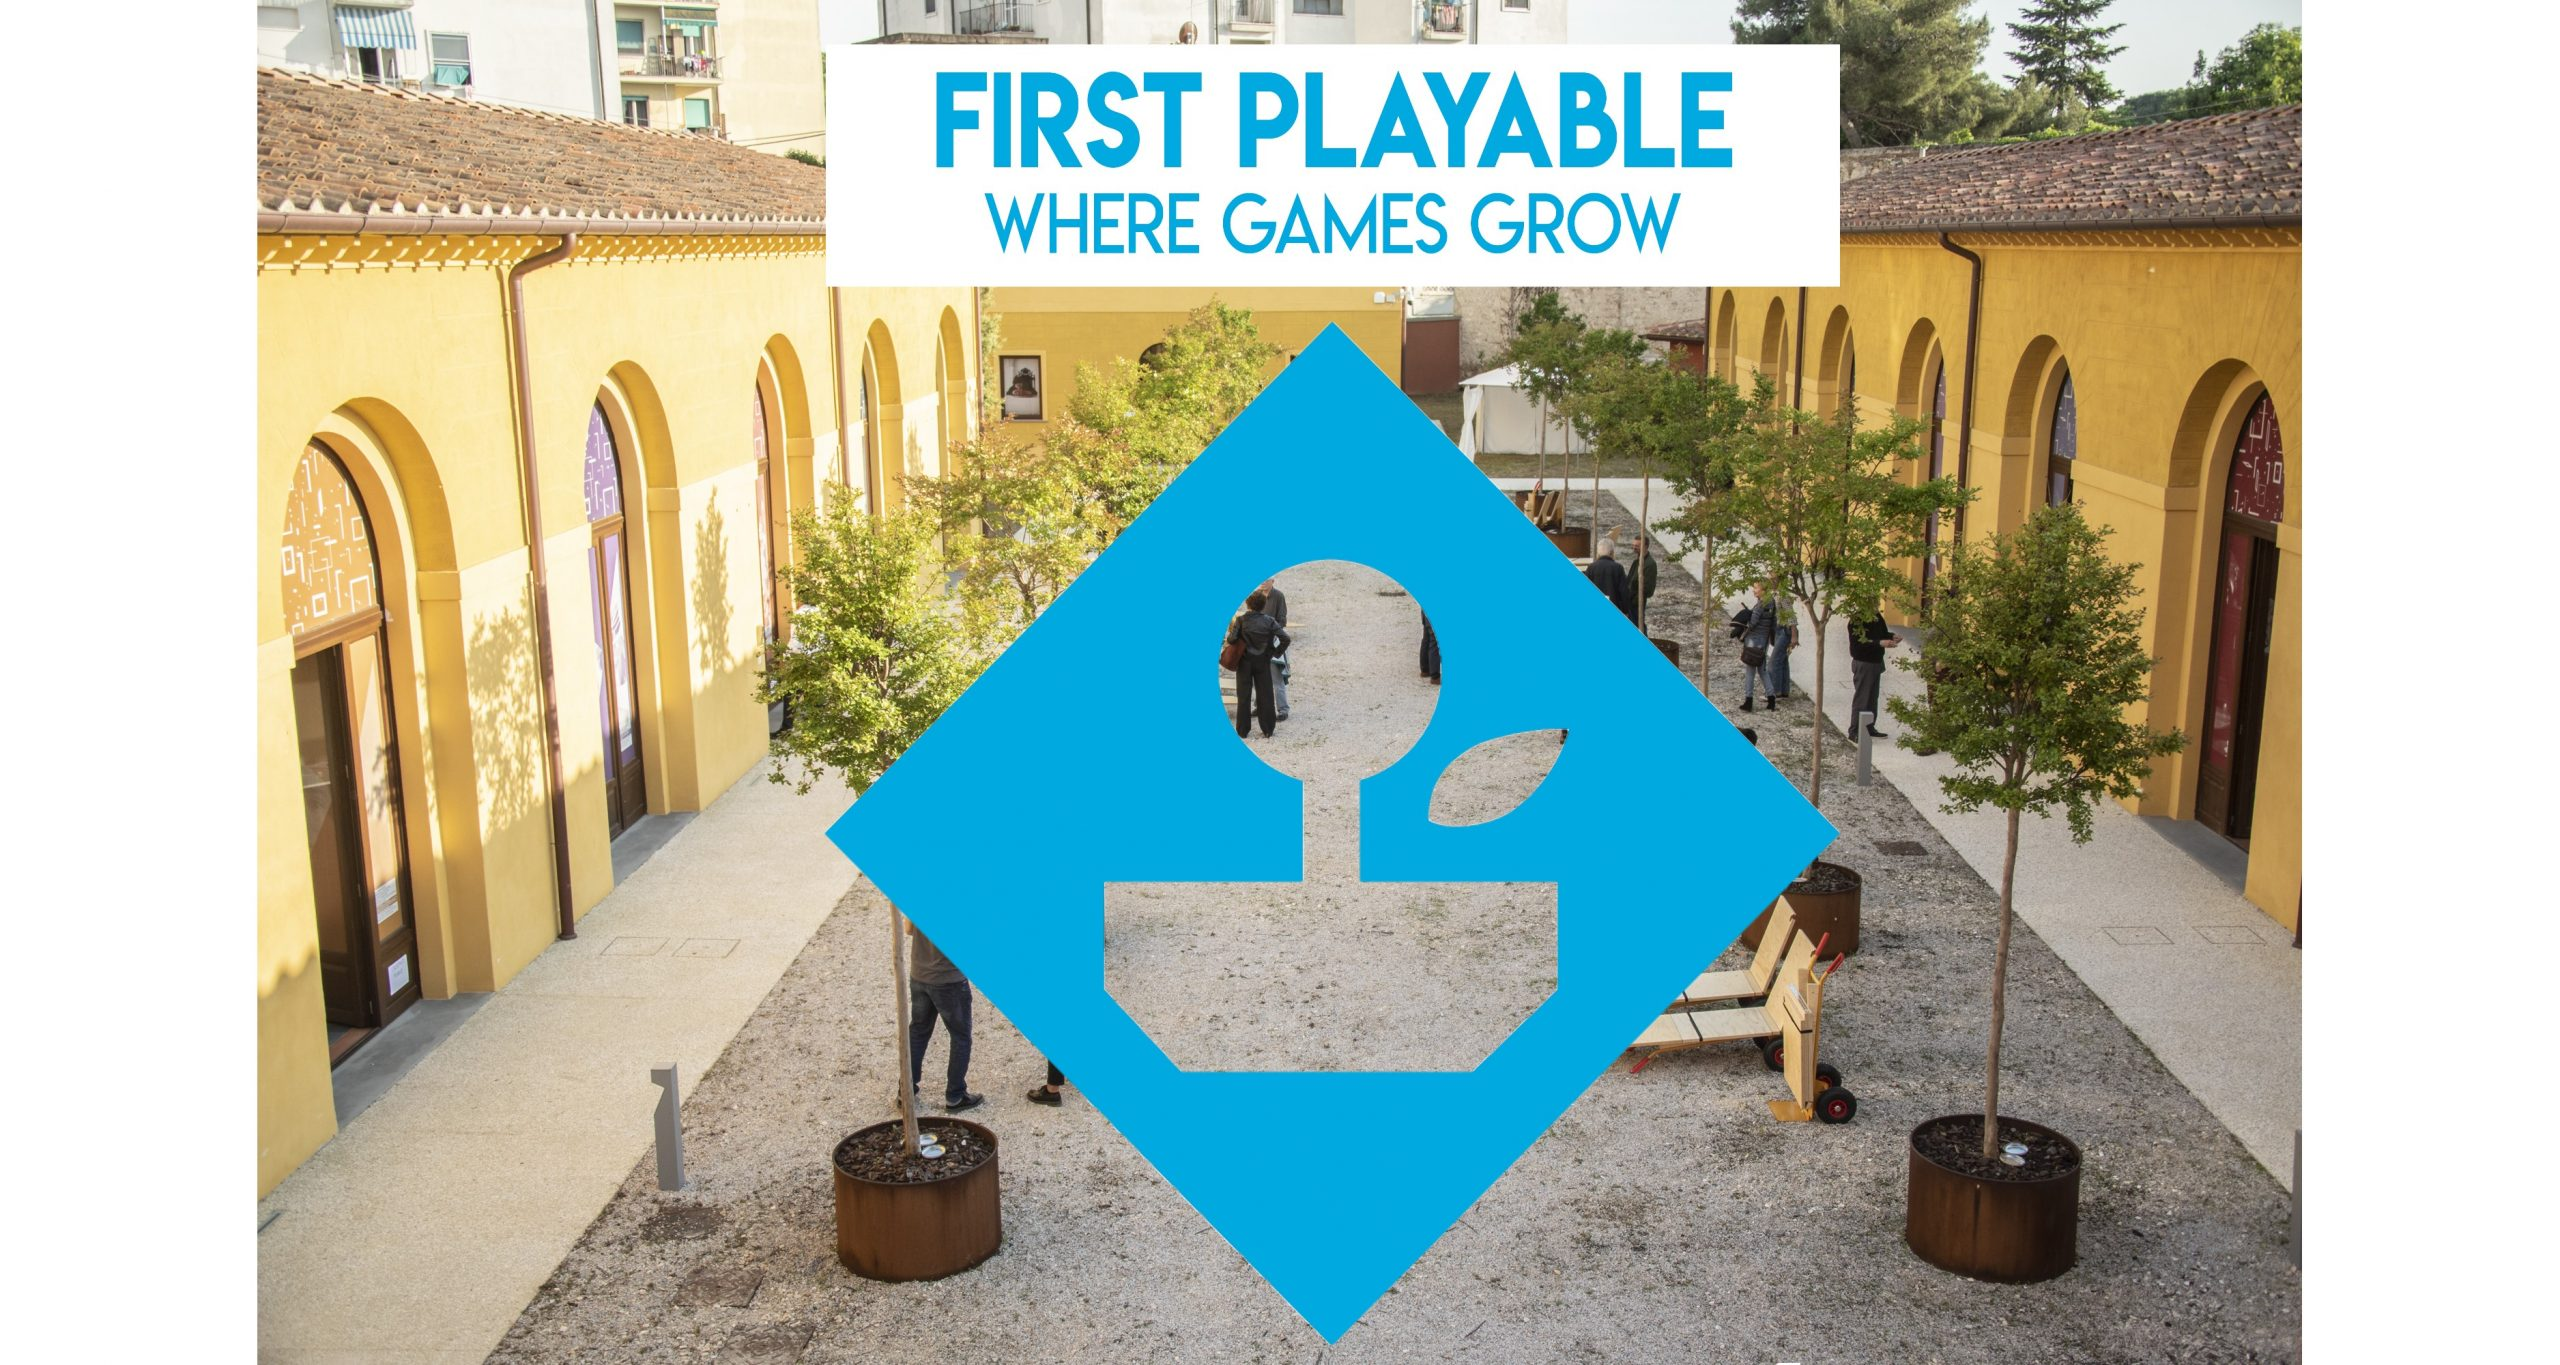 First Playable: primo evento business italiano del gaming internazionale thumbnail